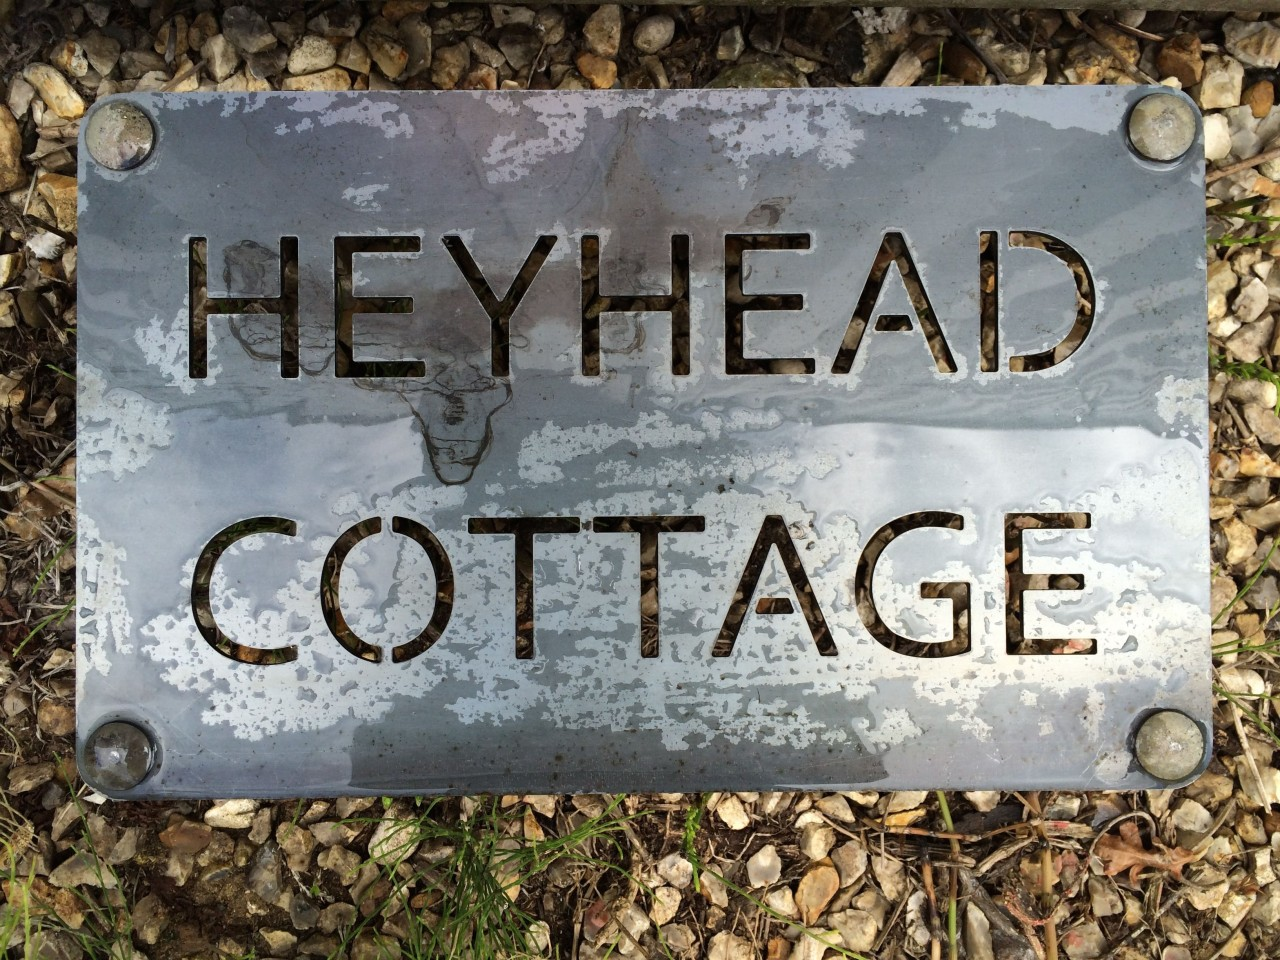 Heyhead Cottage